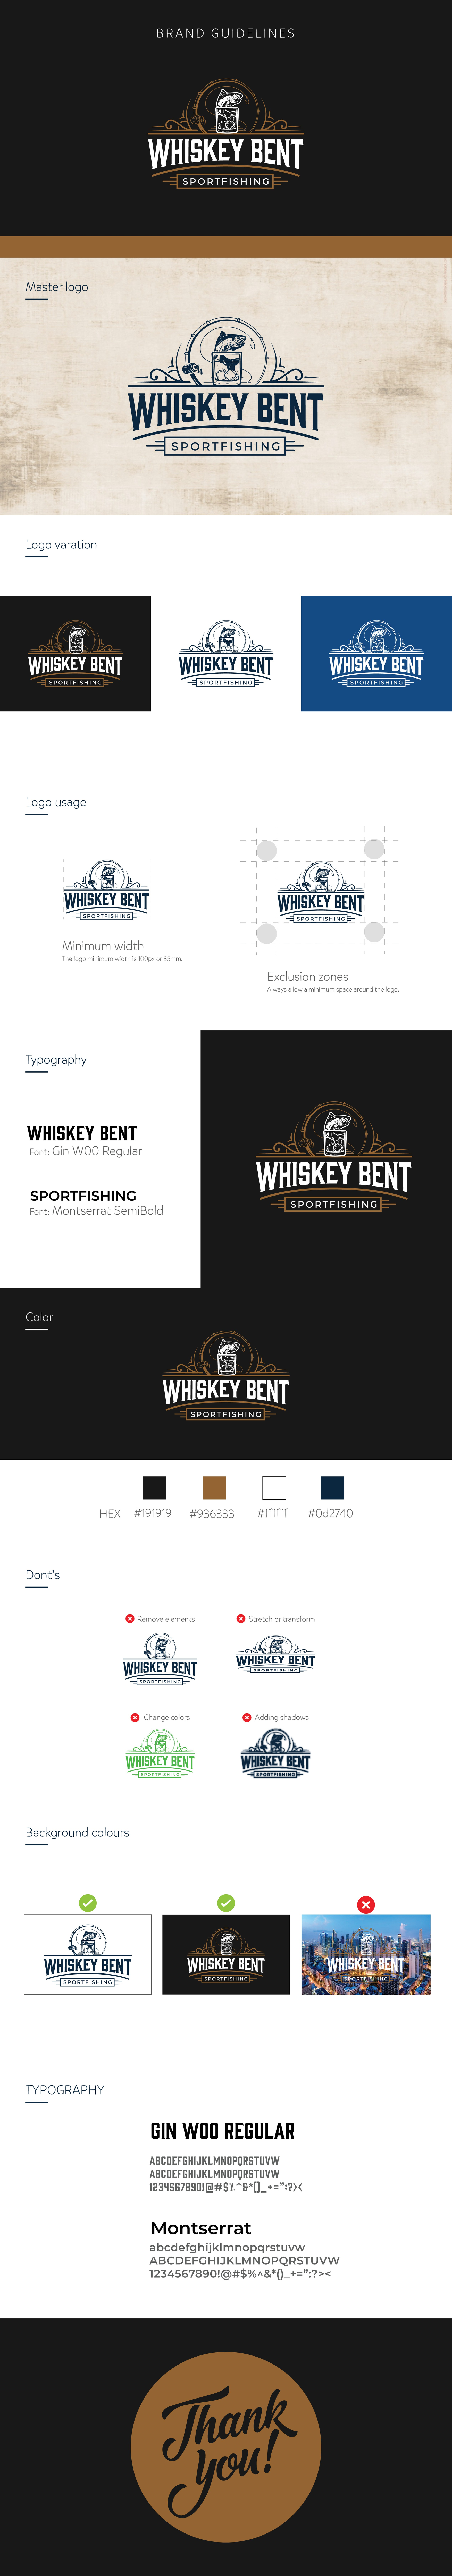 Looking for a Bold and Modern logo for our Sportfishing Team